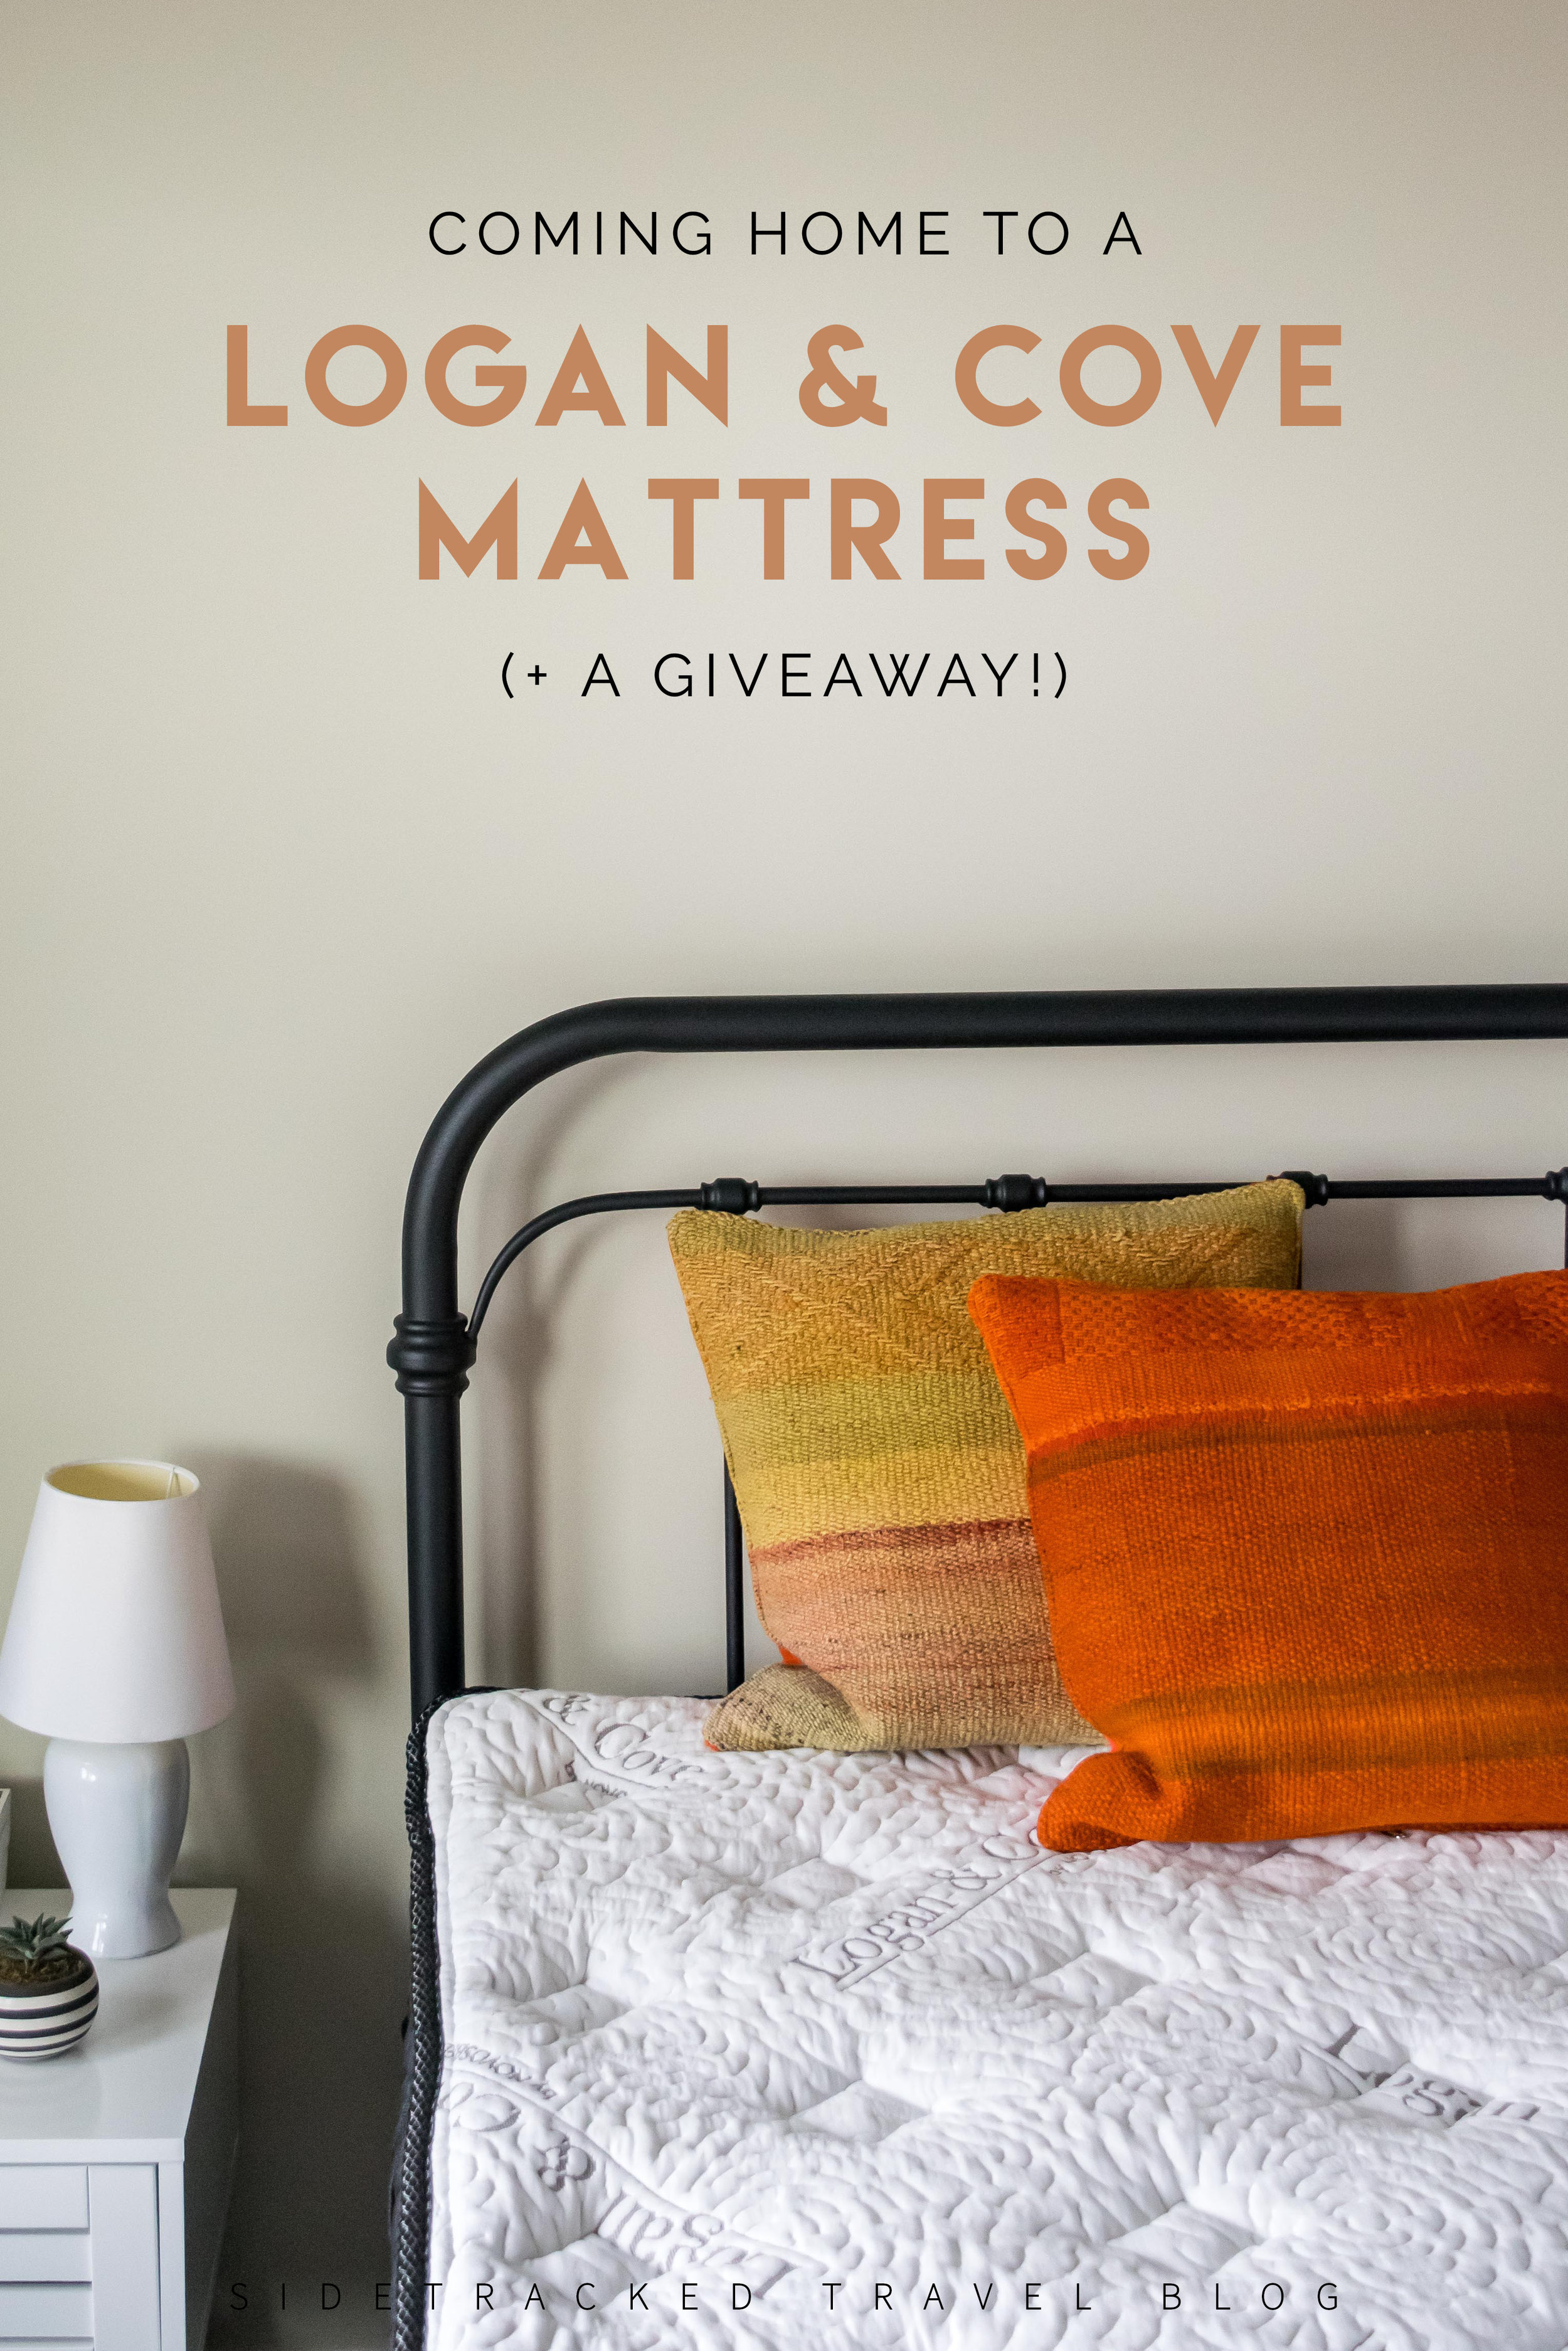 This article contains my thoughts on the importance of having a home base as well as a full review of a Logan & Cove pillow-top mattress (plus a mattress giveaway!).